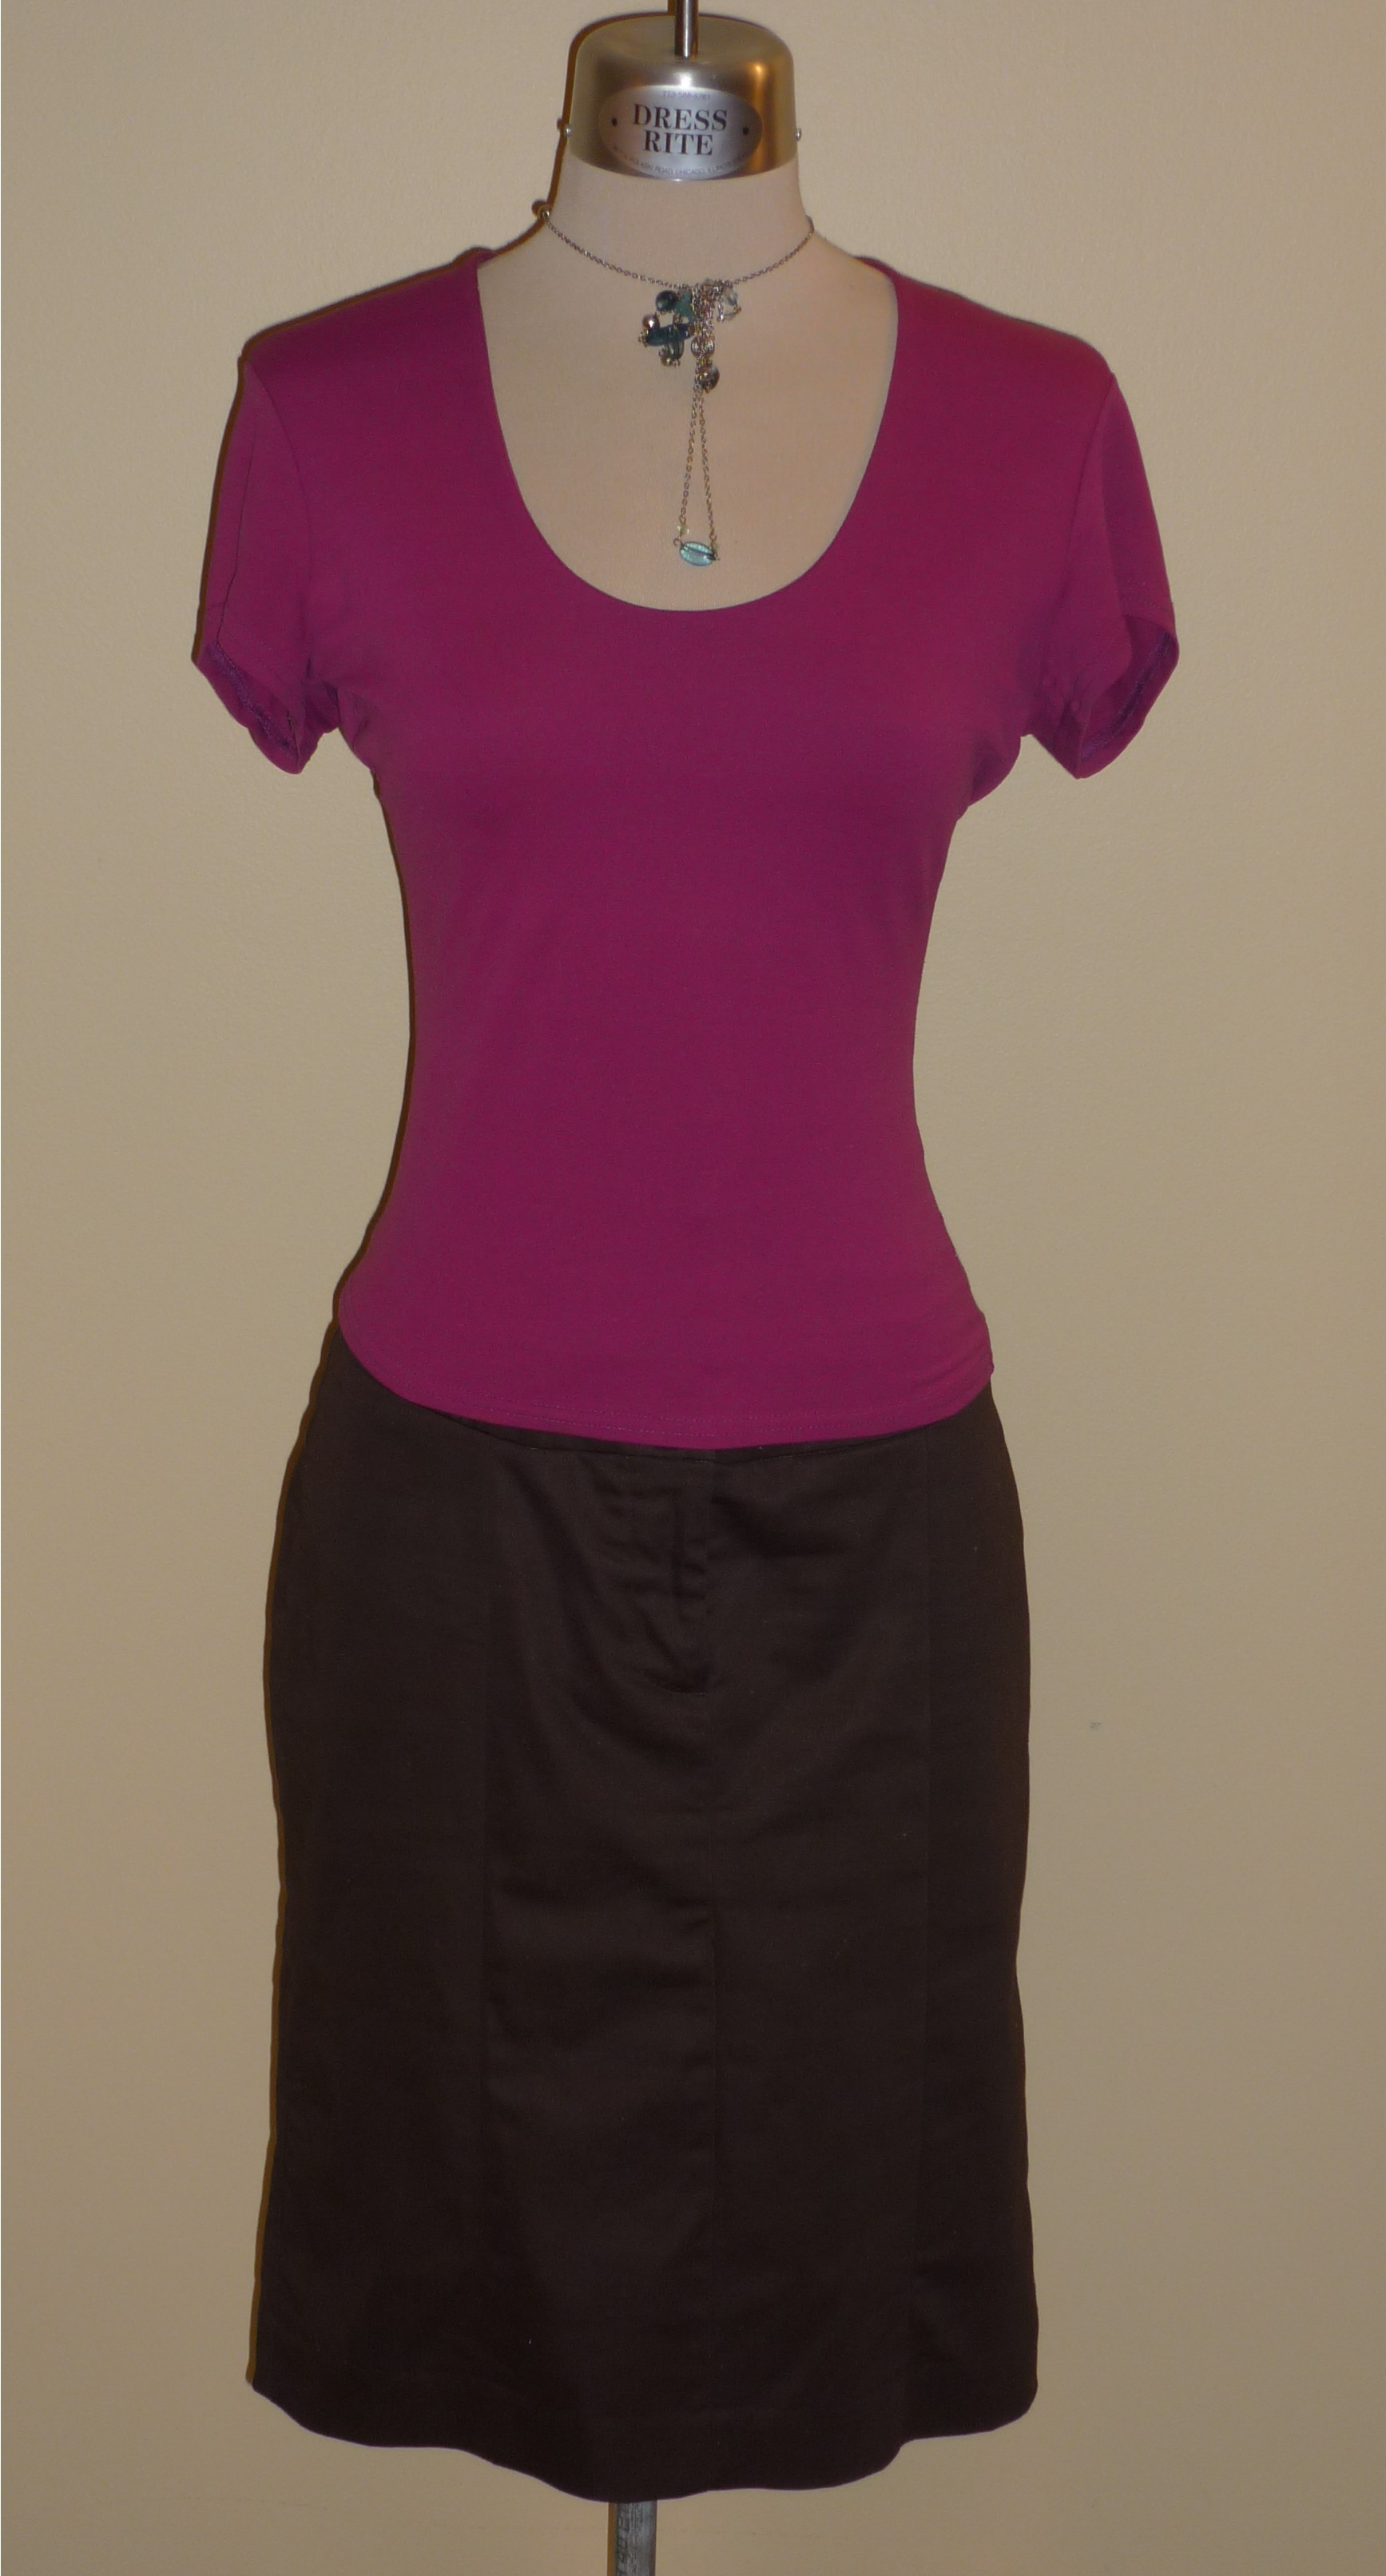 Fuschia top with brown pencil skirt